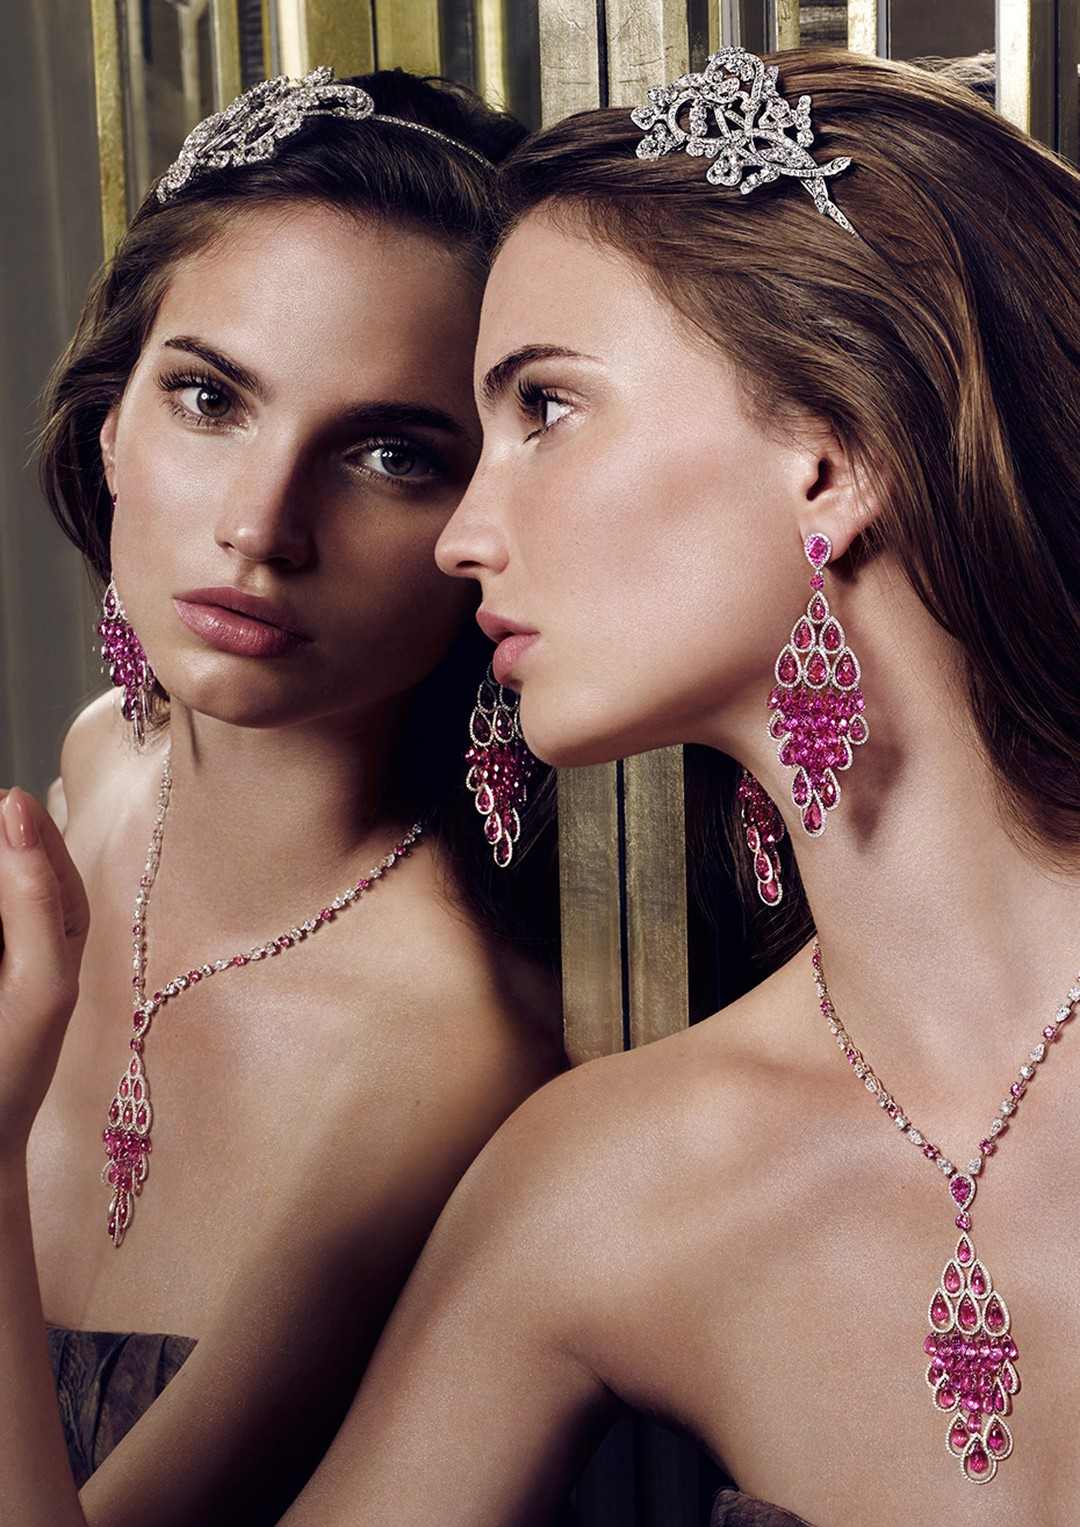 Graff Diamonds' floral motif Alice band, worn with briolette, pear shape and round  sapphire earrings and necklace, one of a collection of new diamond Alice bands that is tapping in to the trend for hair jewels.